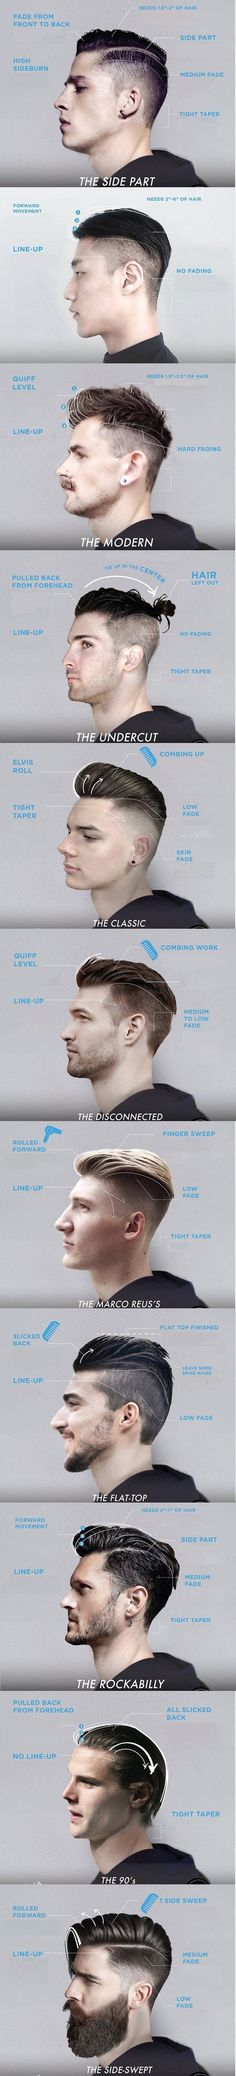 Here's a list of popular styles that we are seeing a lot on men all over social…